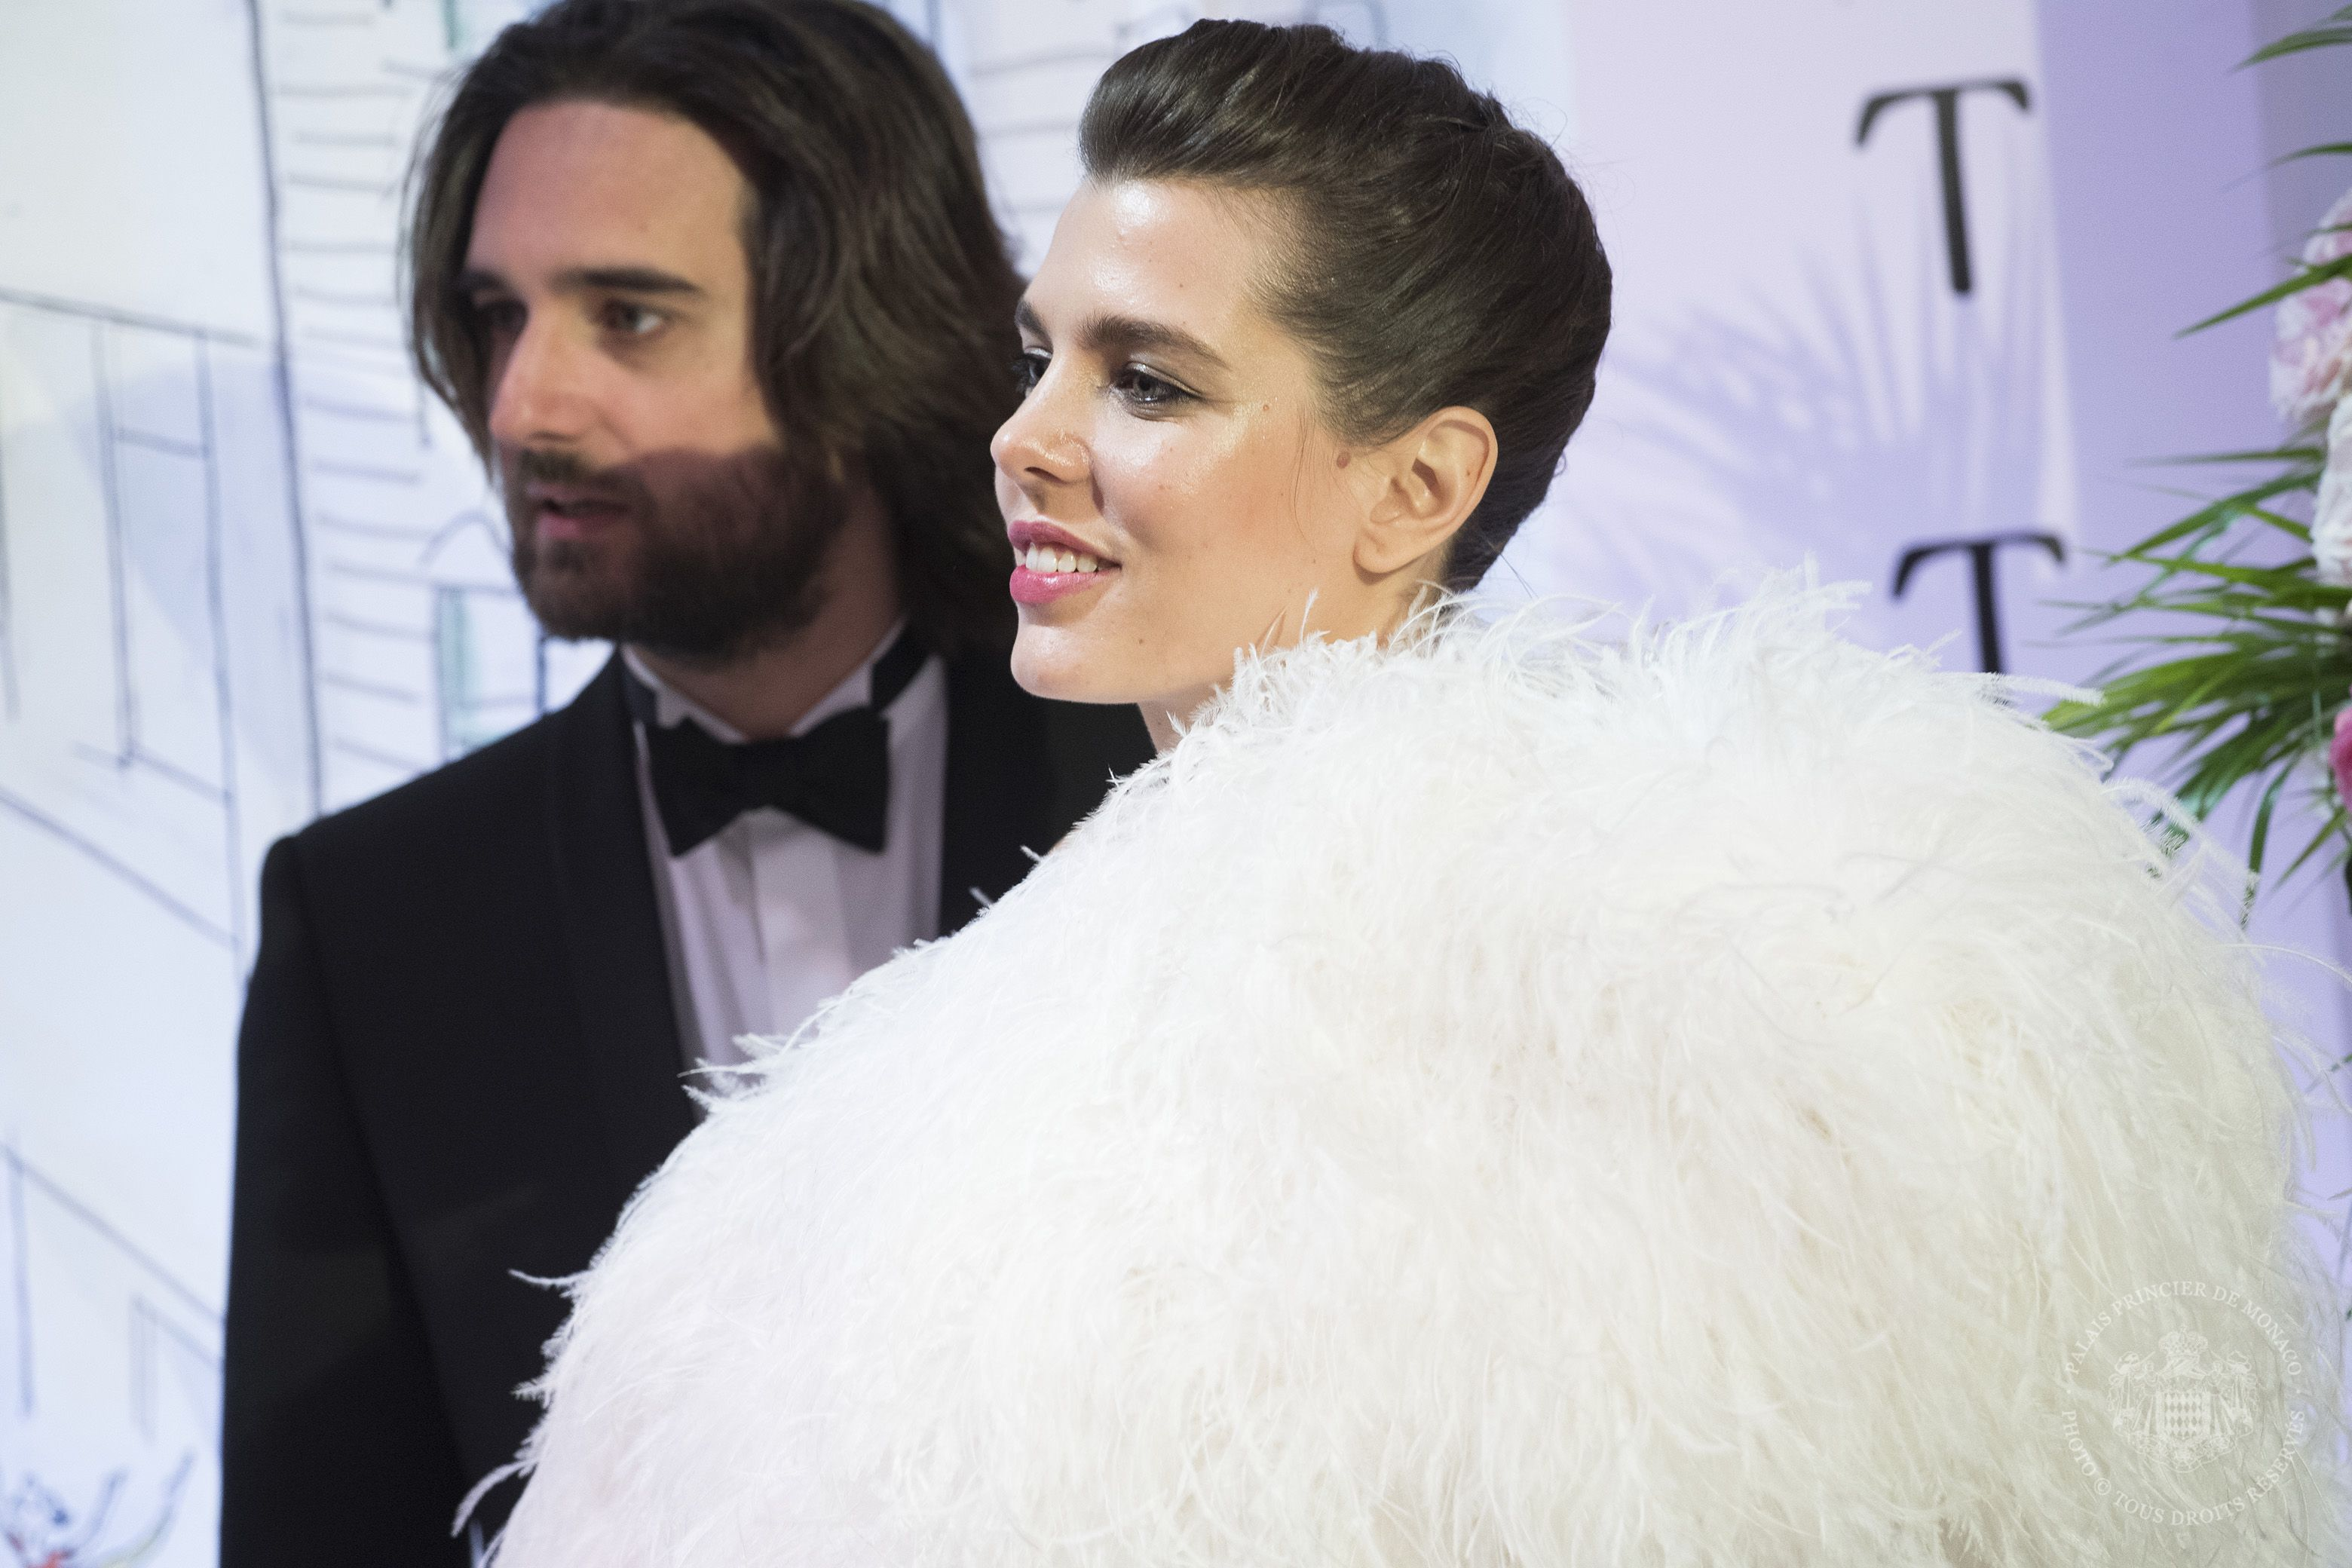 Charlotte Casiraghi Engaged - We Could Be Getting Yet Another Royal ...